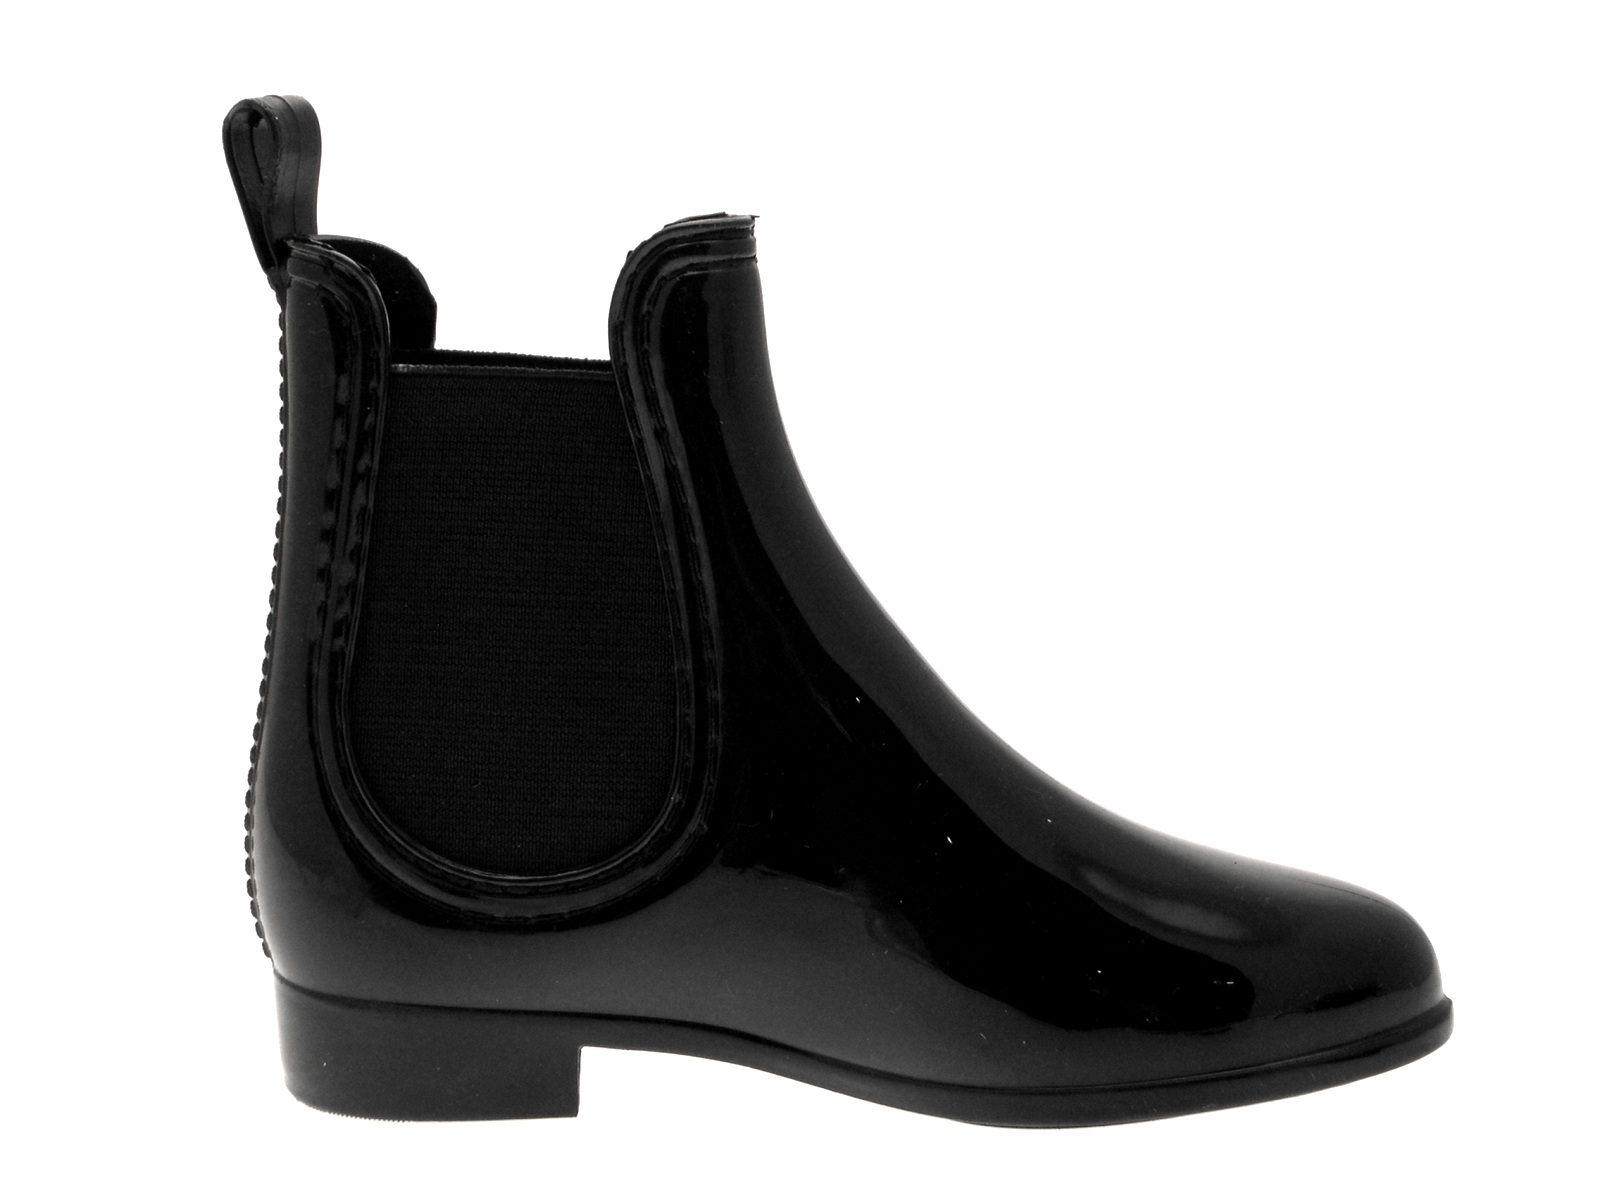 Popularised in the s by famous musicians such as The Beatles, the most distinctive feature of the men's Chelsea Boot style is its elastic siding, called a gusset, running from the heel to the top of the boot. Stream Tommy Hilfiger Black Rubber Chelsea Wellies. $ sizes. available sizes: US10, US11, US Oliver Sweeney.